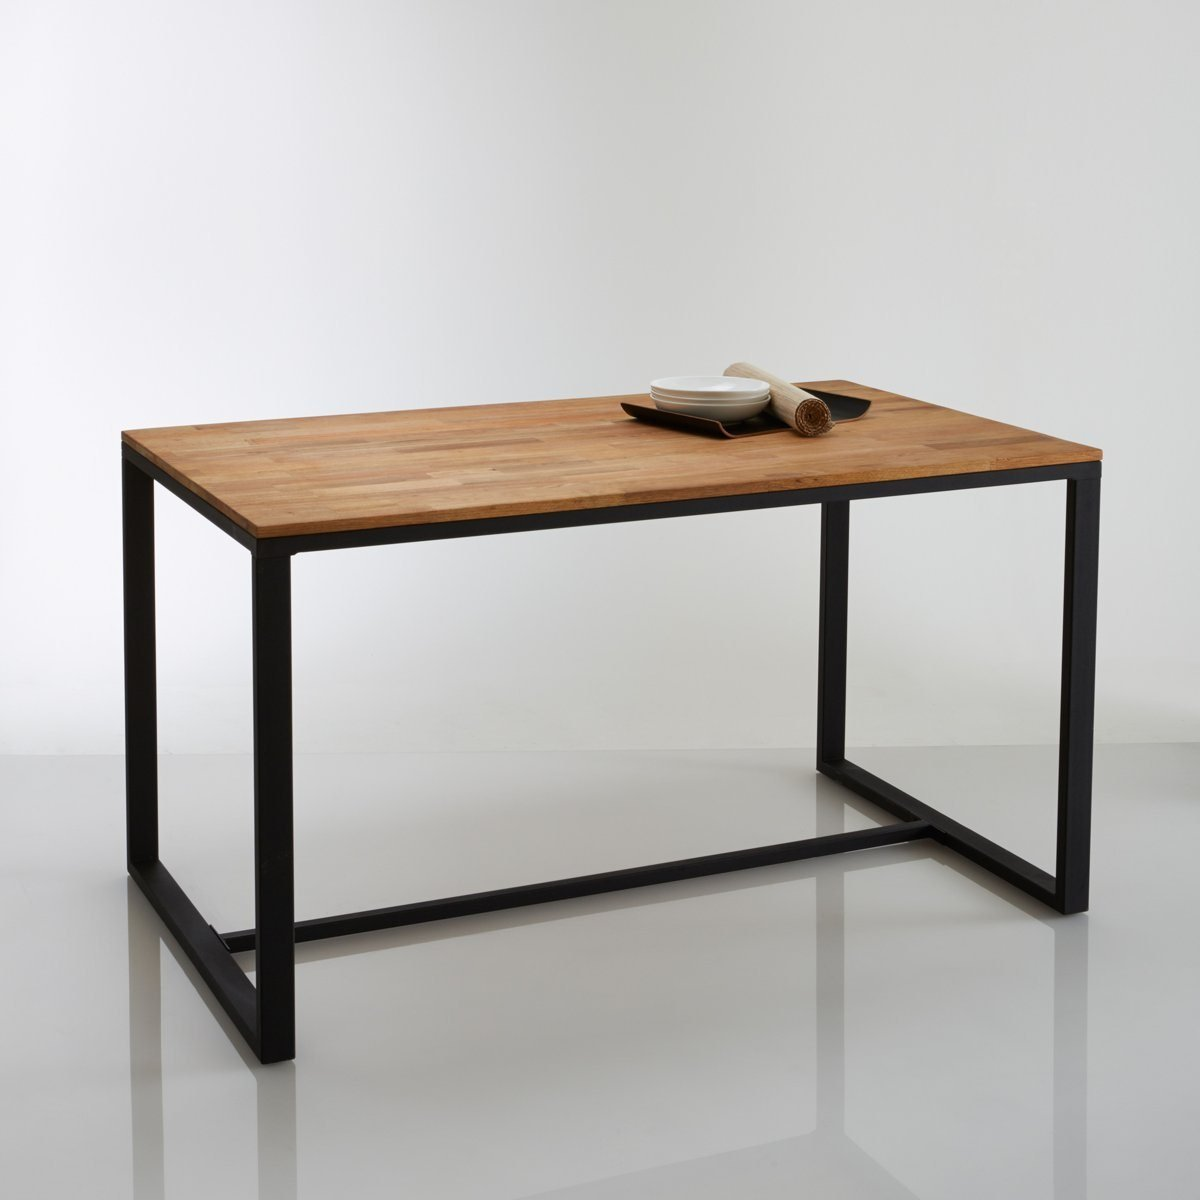 La Redoute Interieurs Hiba Solid Walnut 4 Seater Dining Table